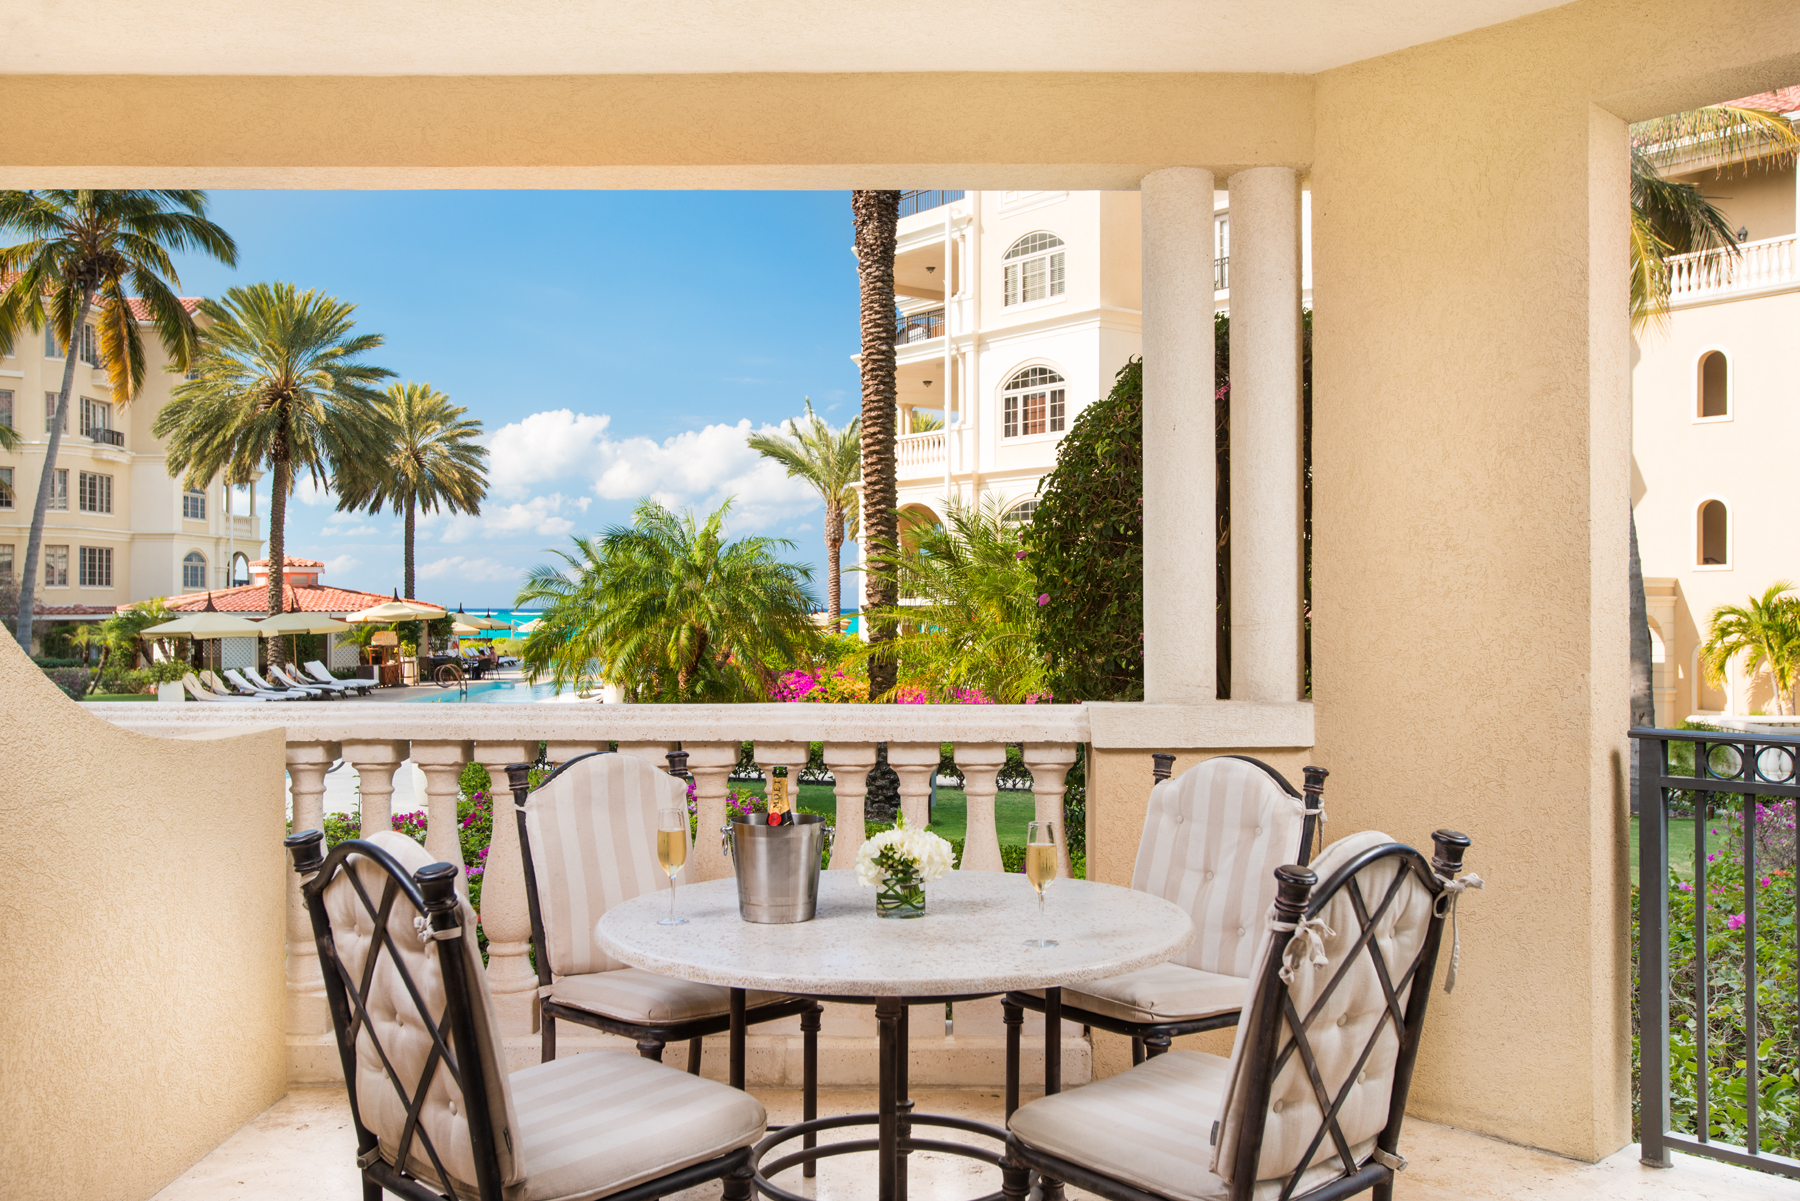 Condominium for Sale at The Somerset - Suite E102 Beachfront Grace Bay, Providenciales, TCI BWI Turks And Caicos Islands